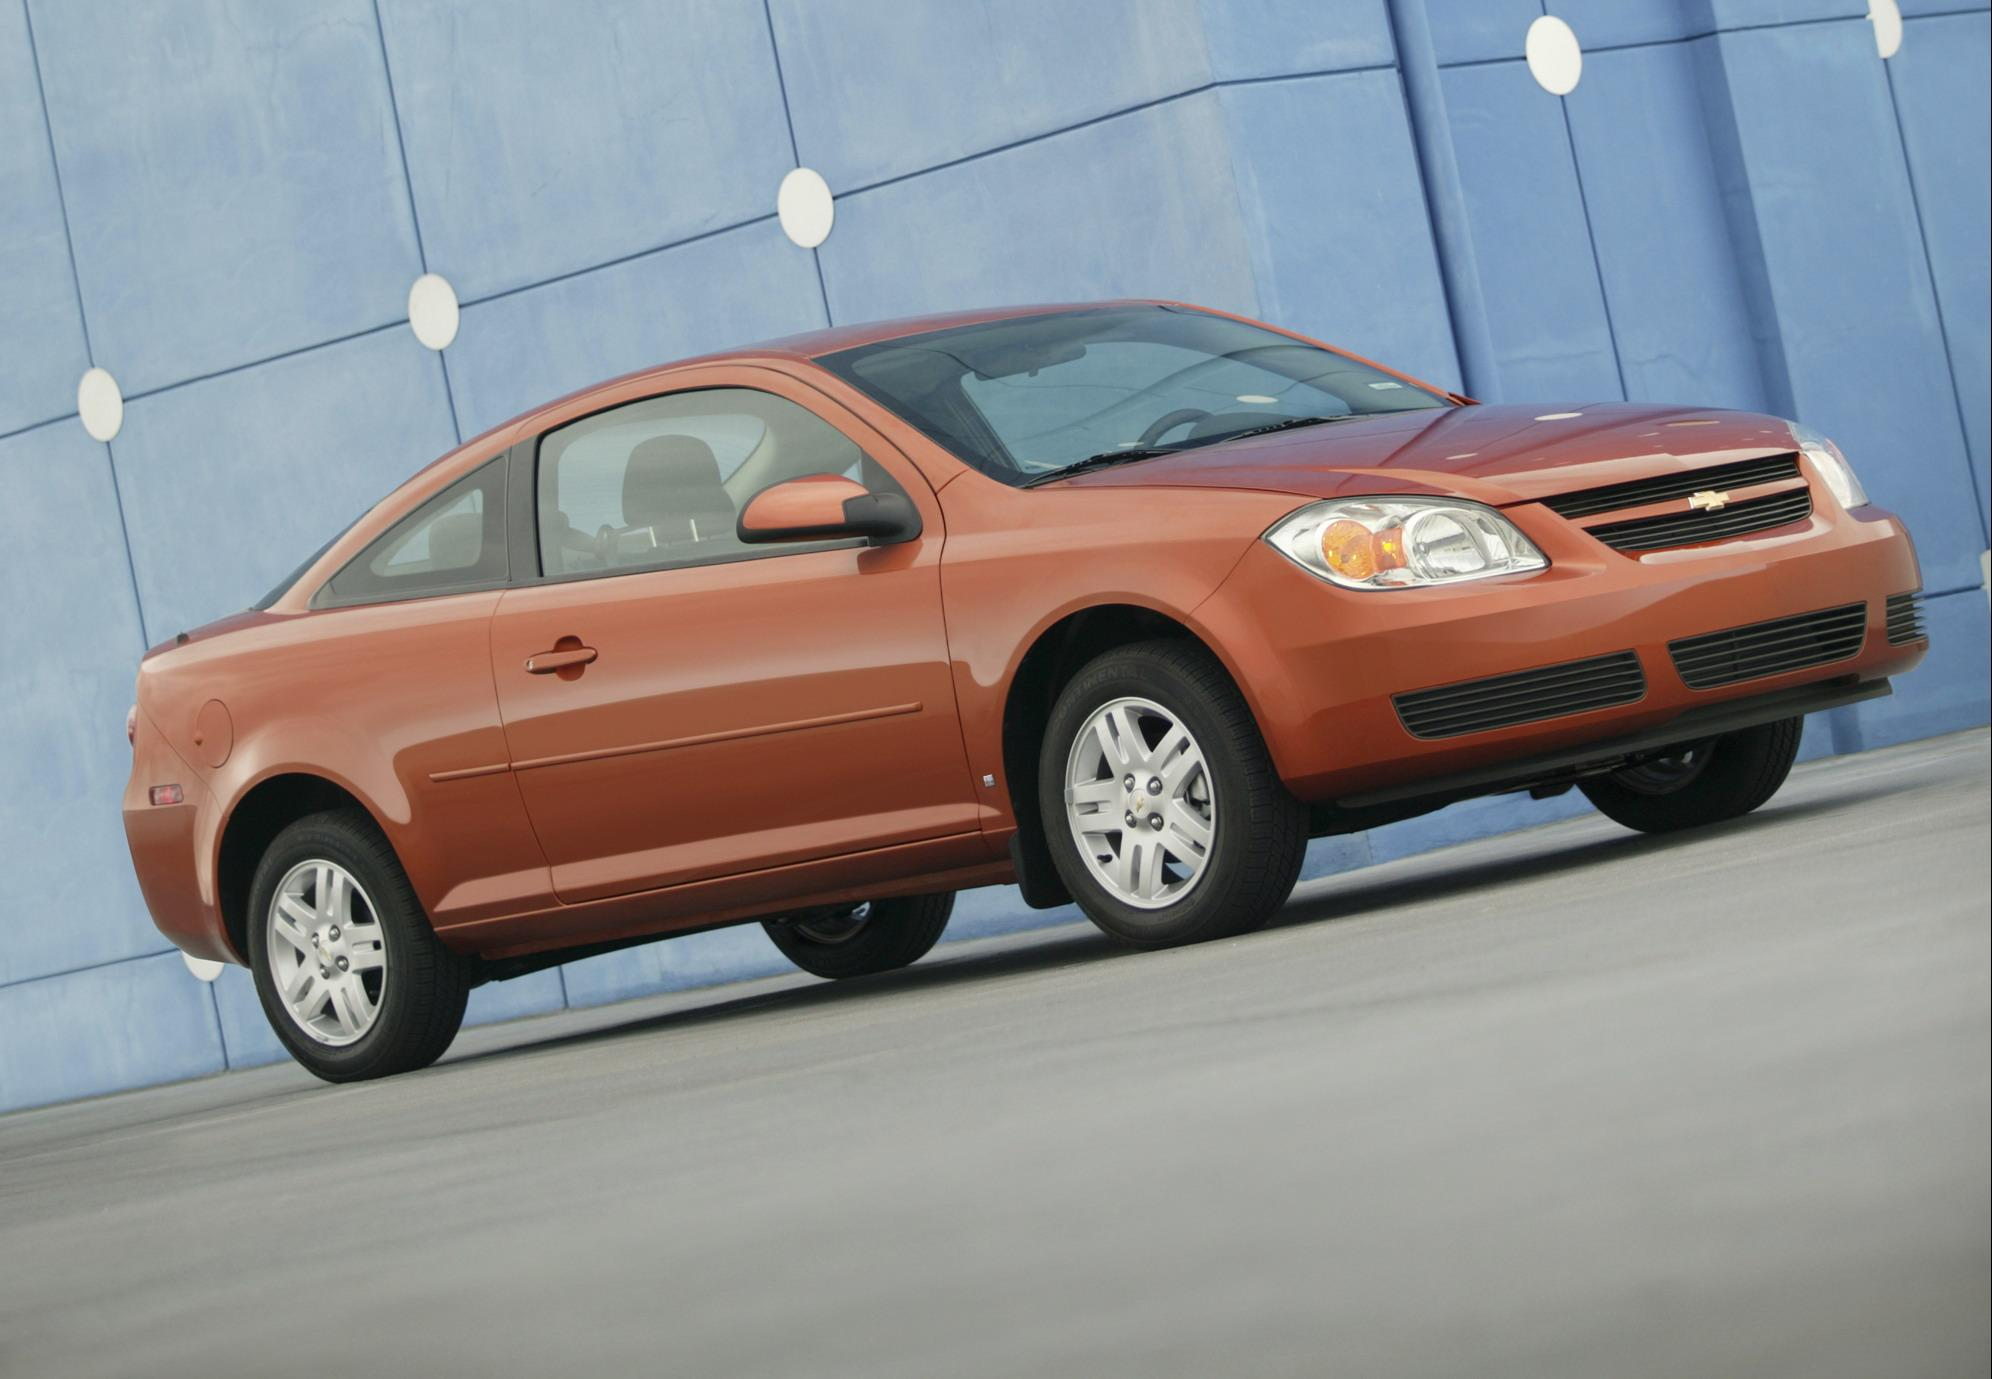 2008 chevrolet cobalt xfe review gallery top speed. Black Bedroom Furniture Sets. Home Design Ideas